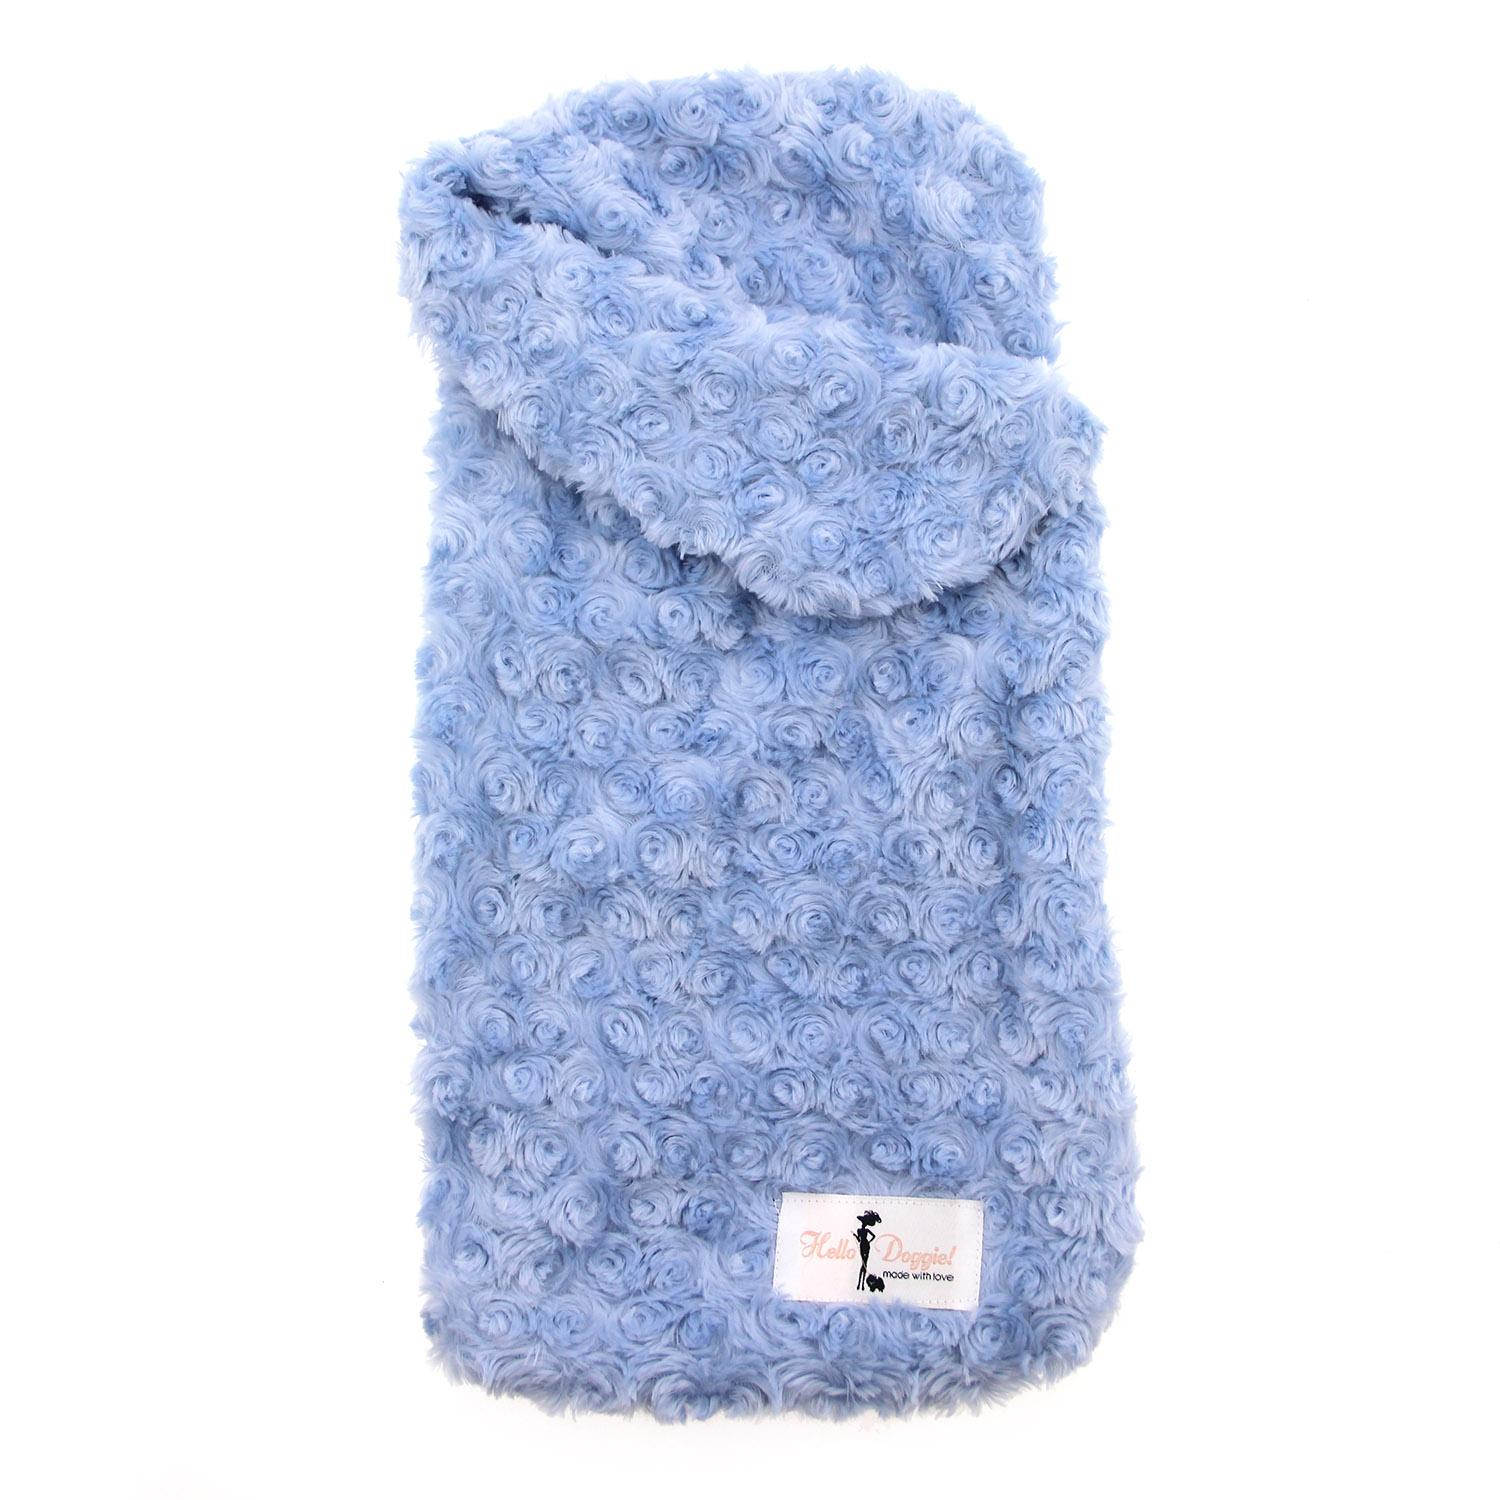 Snuggle Pup Sleeping Bag Dog Bed by Hello Doggie - Rosebud Blue